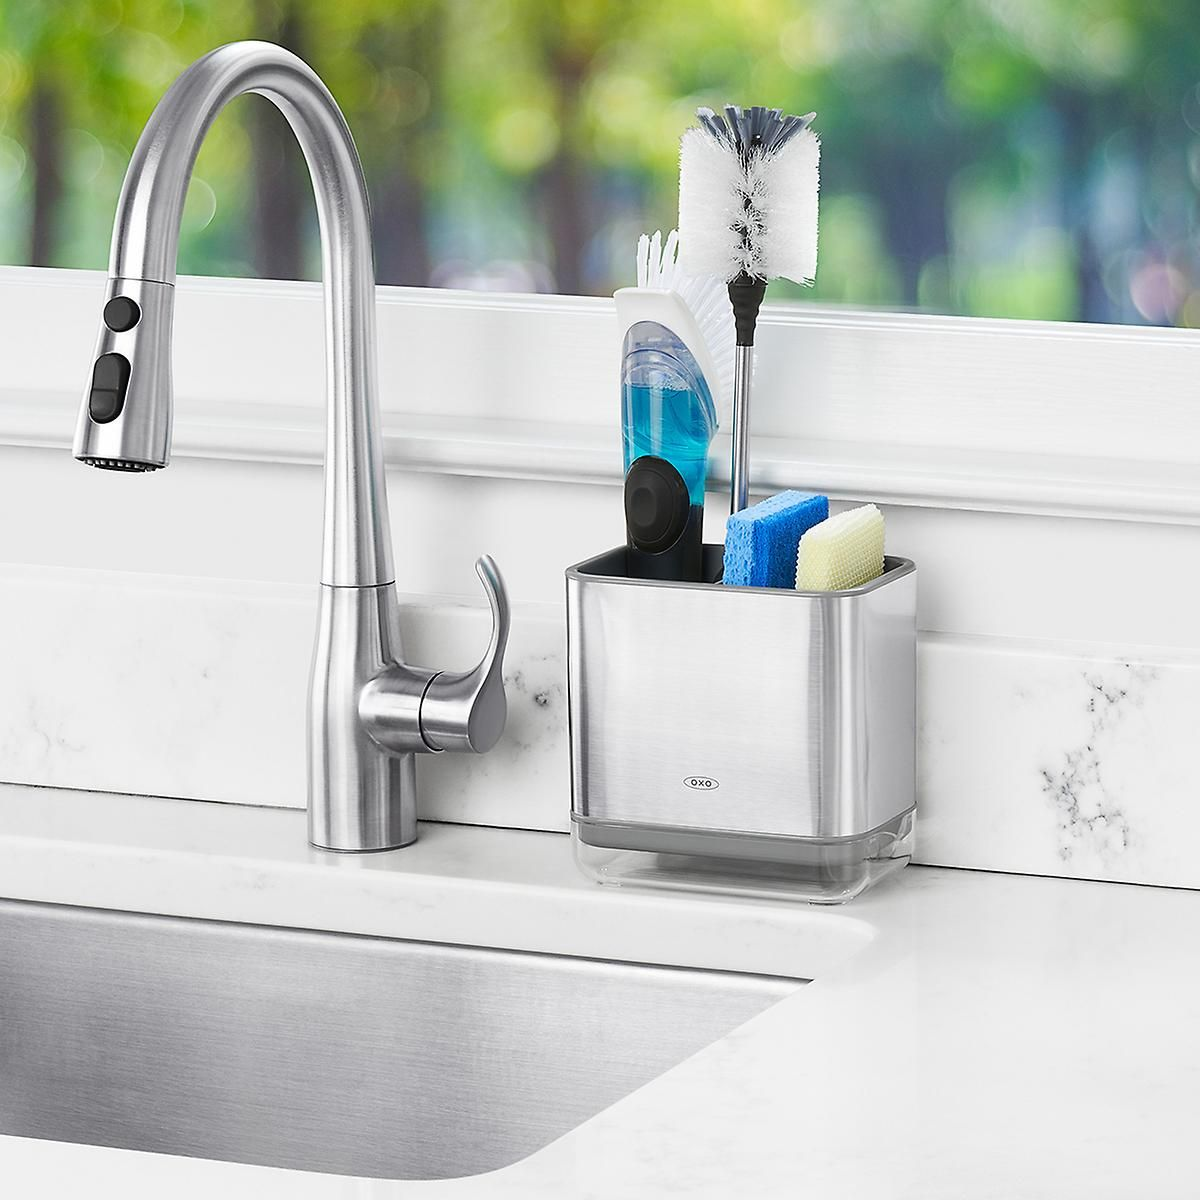 OXO Stainless Steel Sink Caddy Sink caddy, Sink